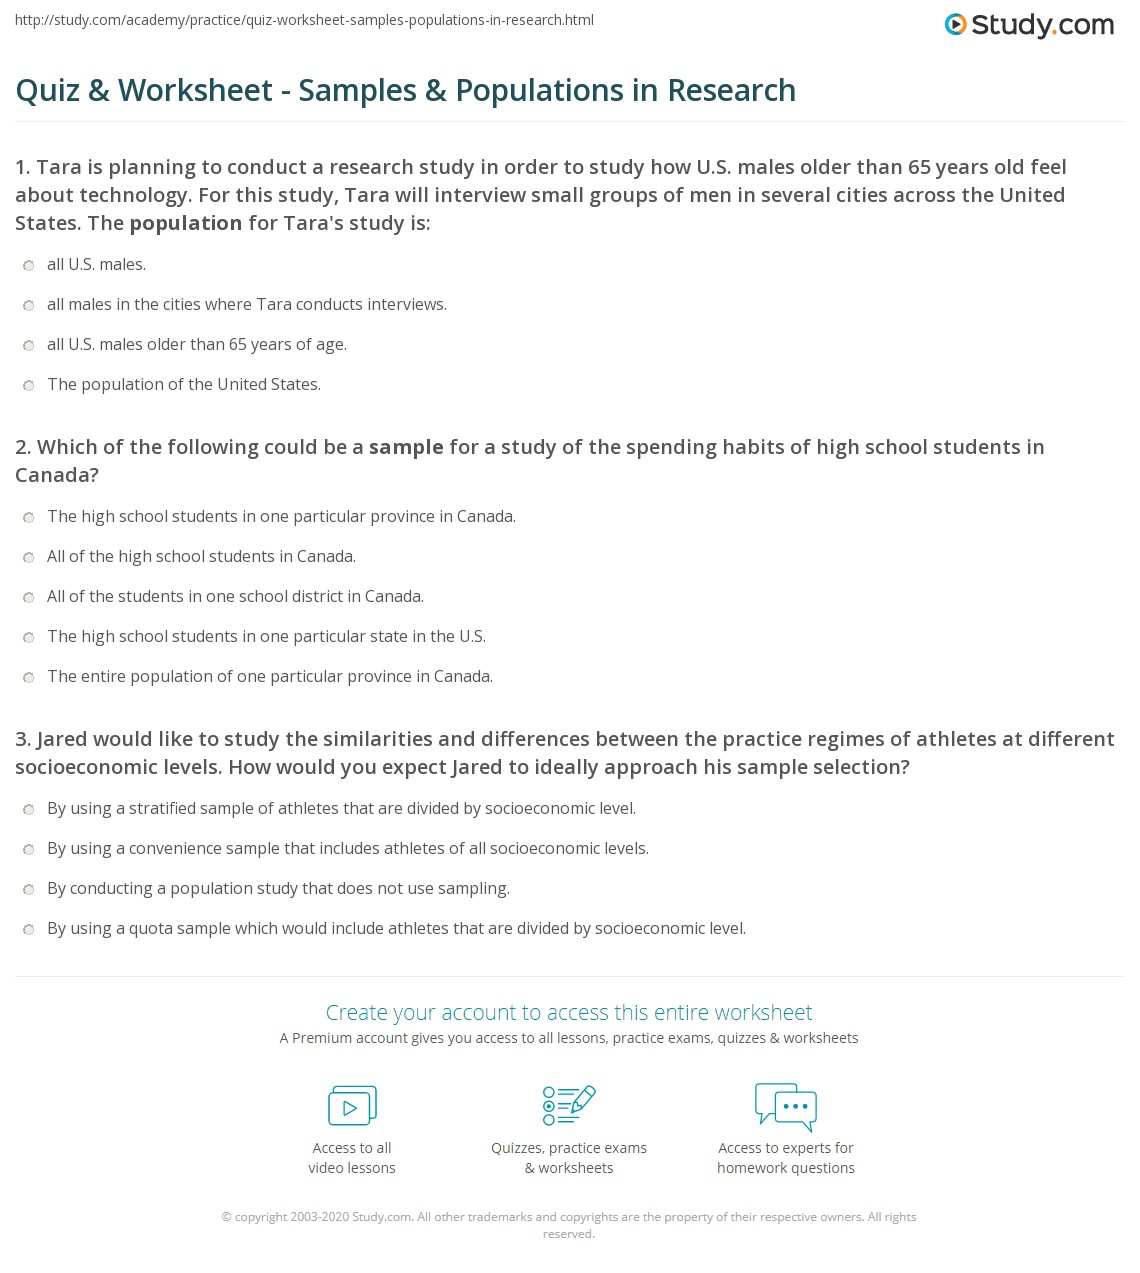 quiz worksheet samples populations in research. Black Bedroom Furniture Sets. Home Design Ideas